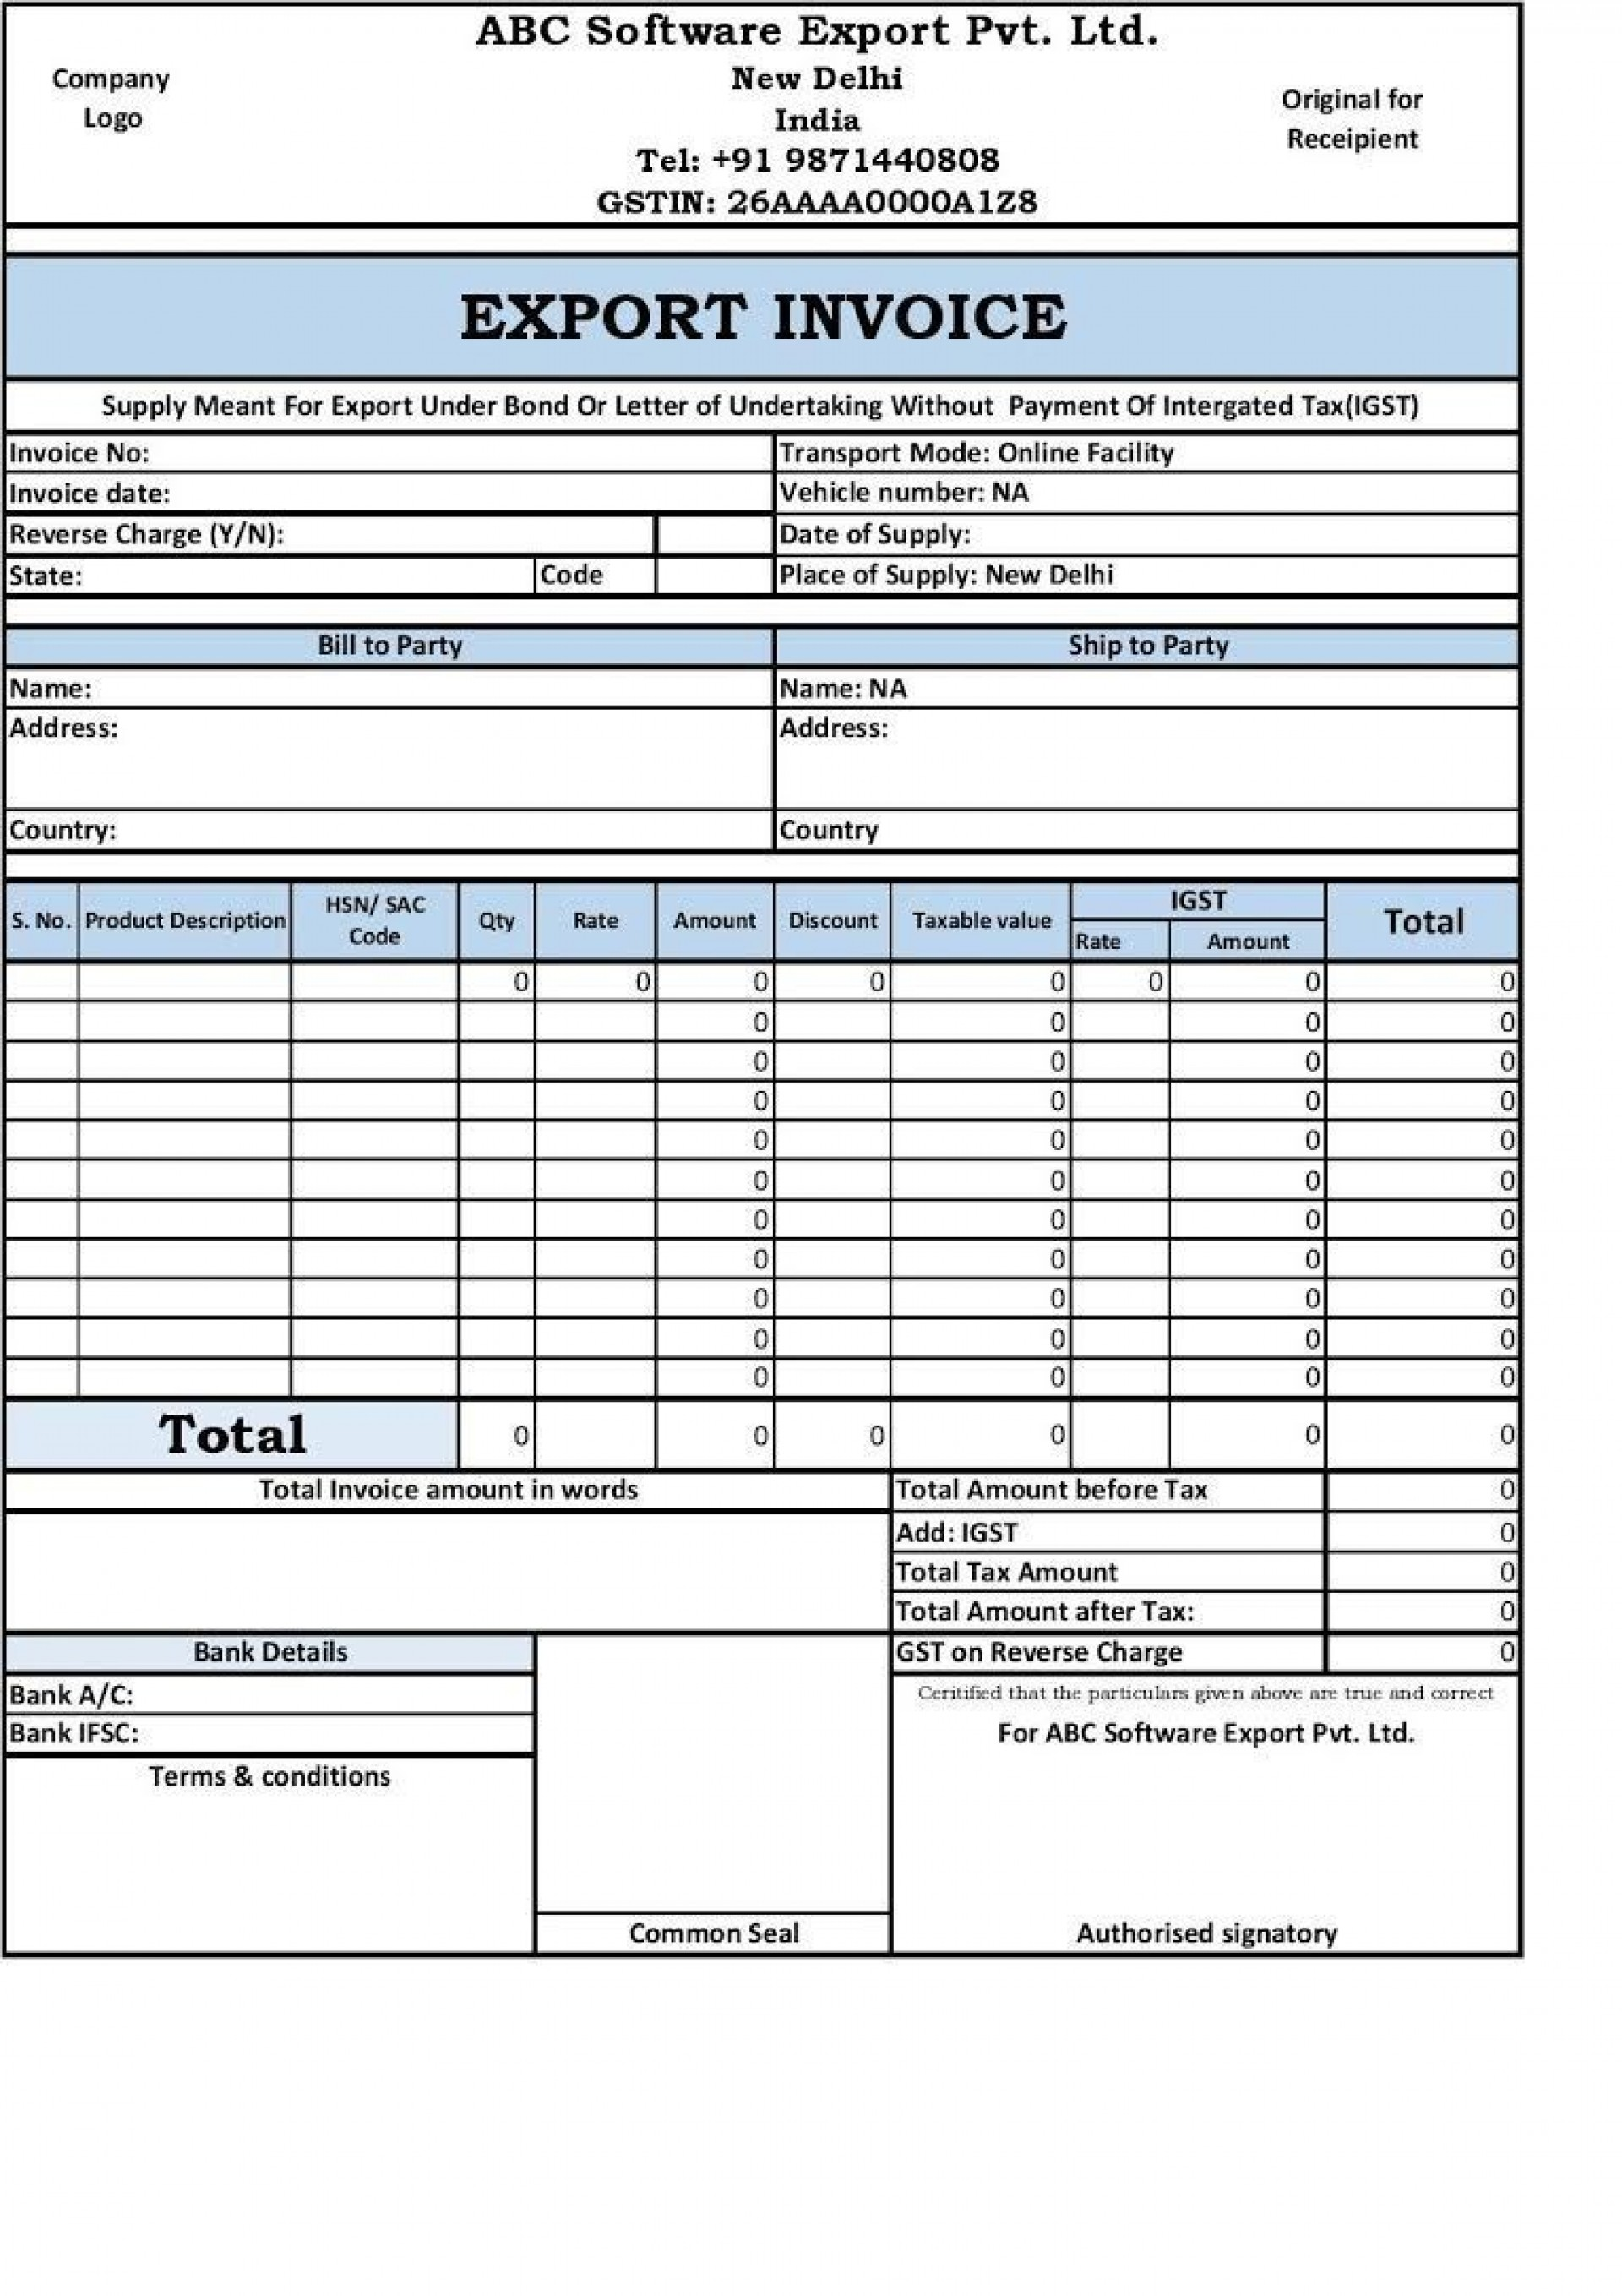 002 Amazing Free Excel Invoice Template Gst India Image 1920